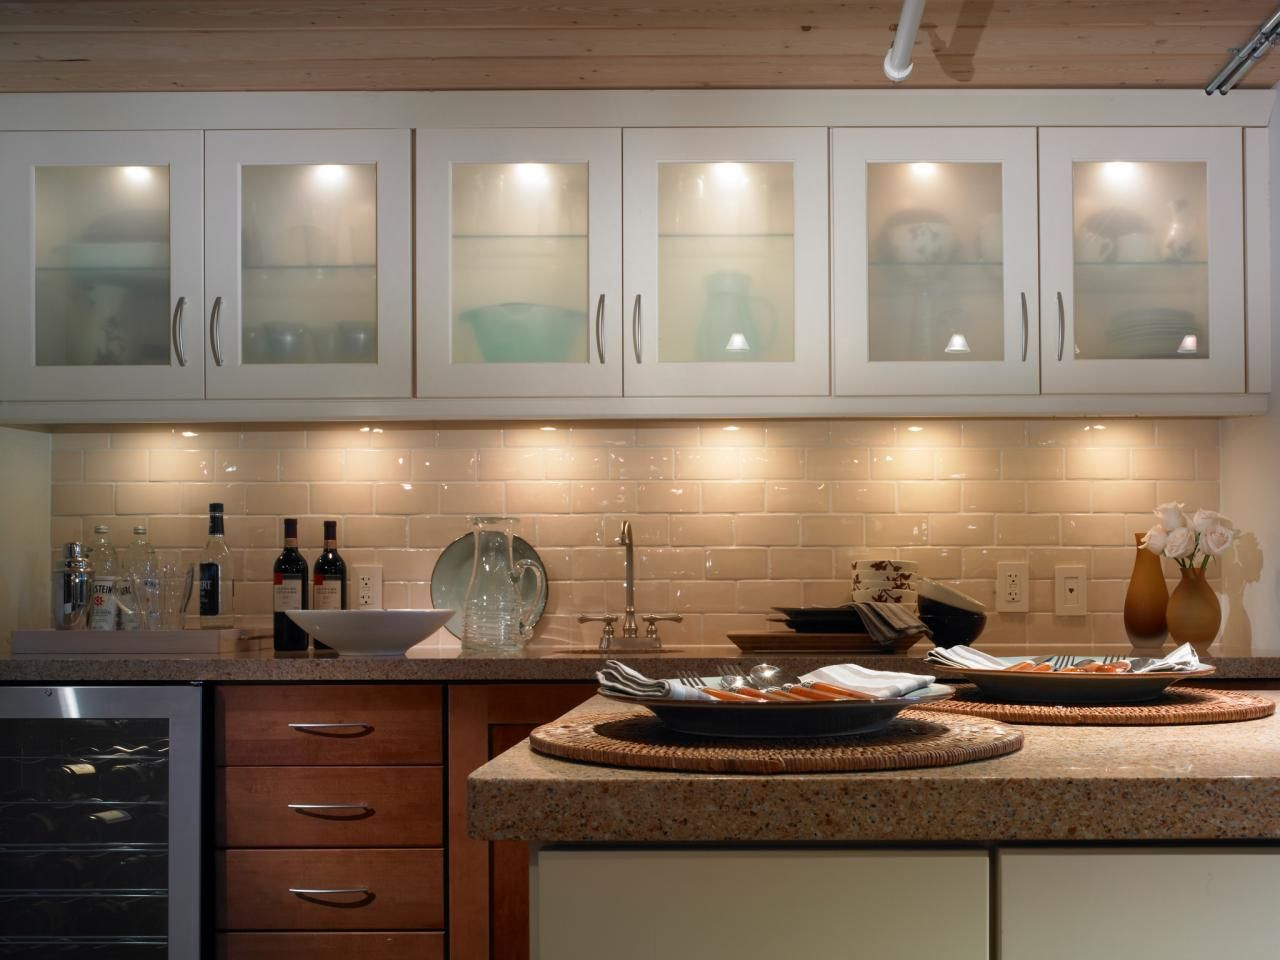 kitchen lighting design tips | kitchen lighting design, lighting